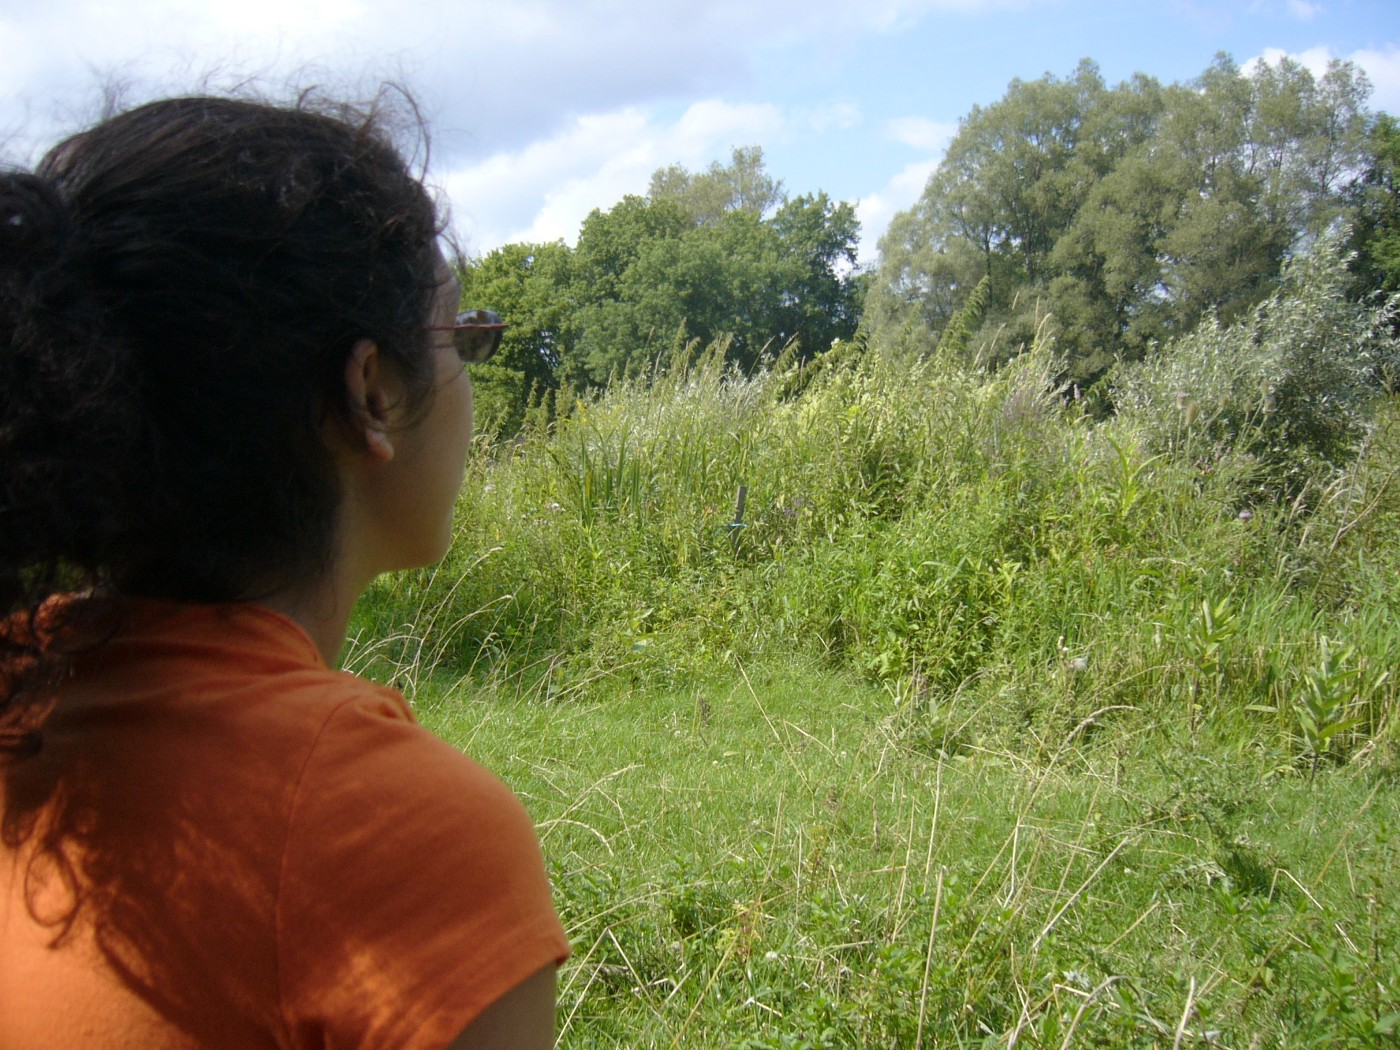 Woman in orange t-shirt looking at lush grassy field and blue sky.